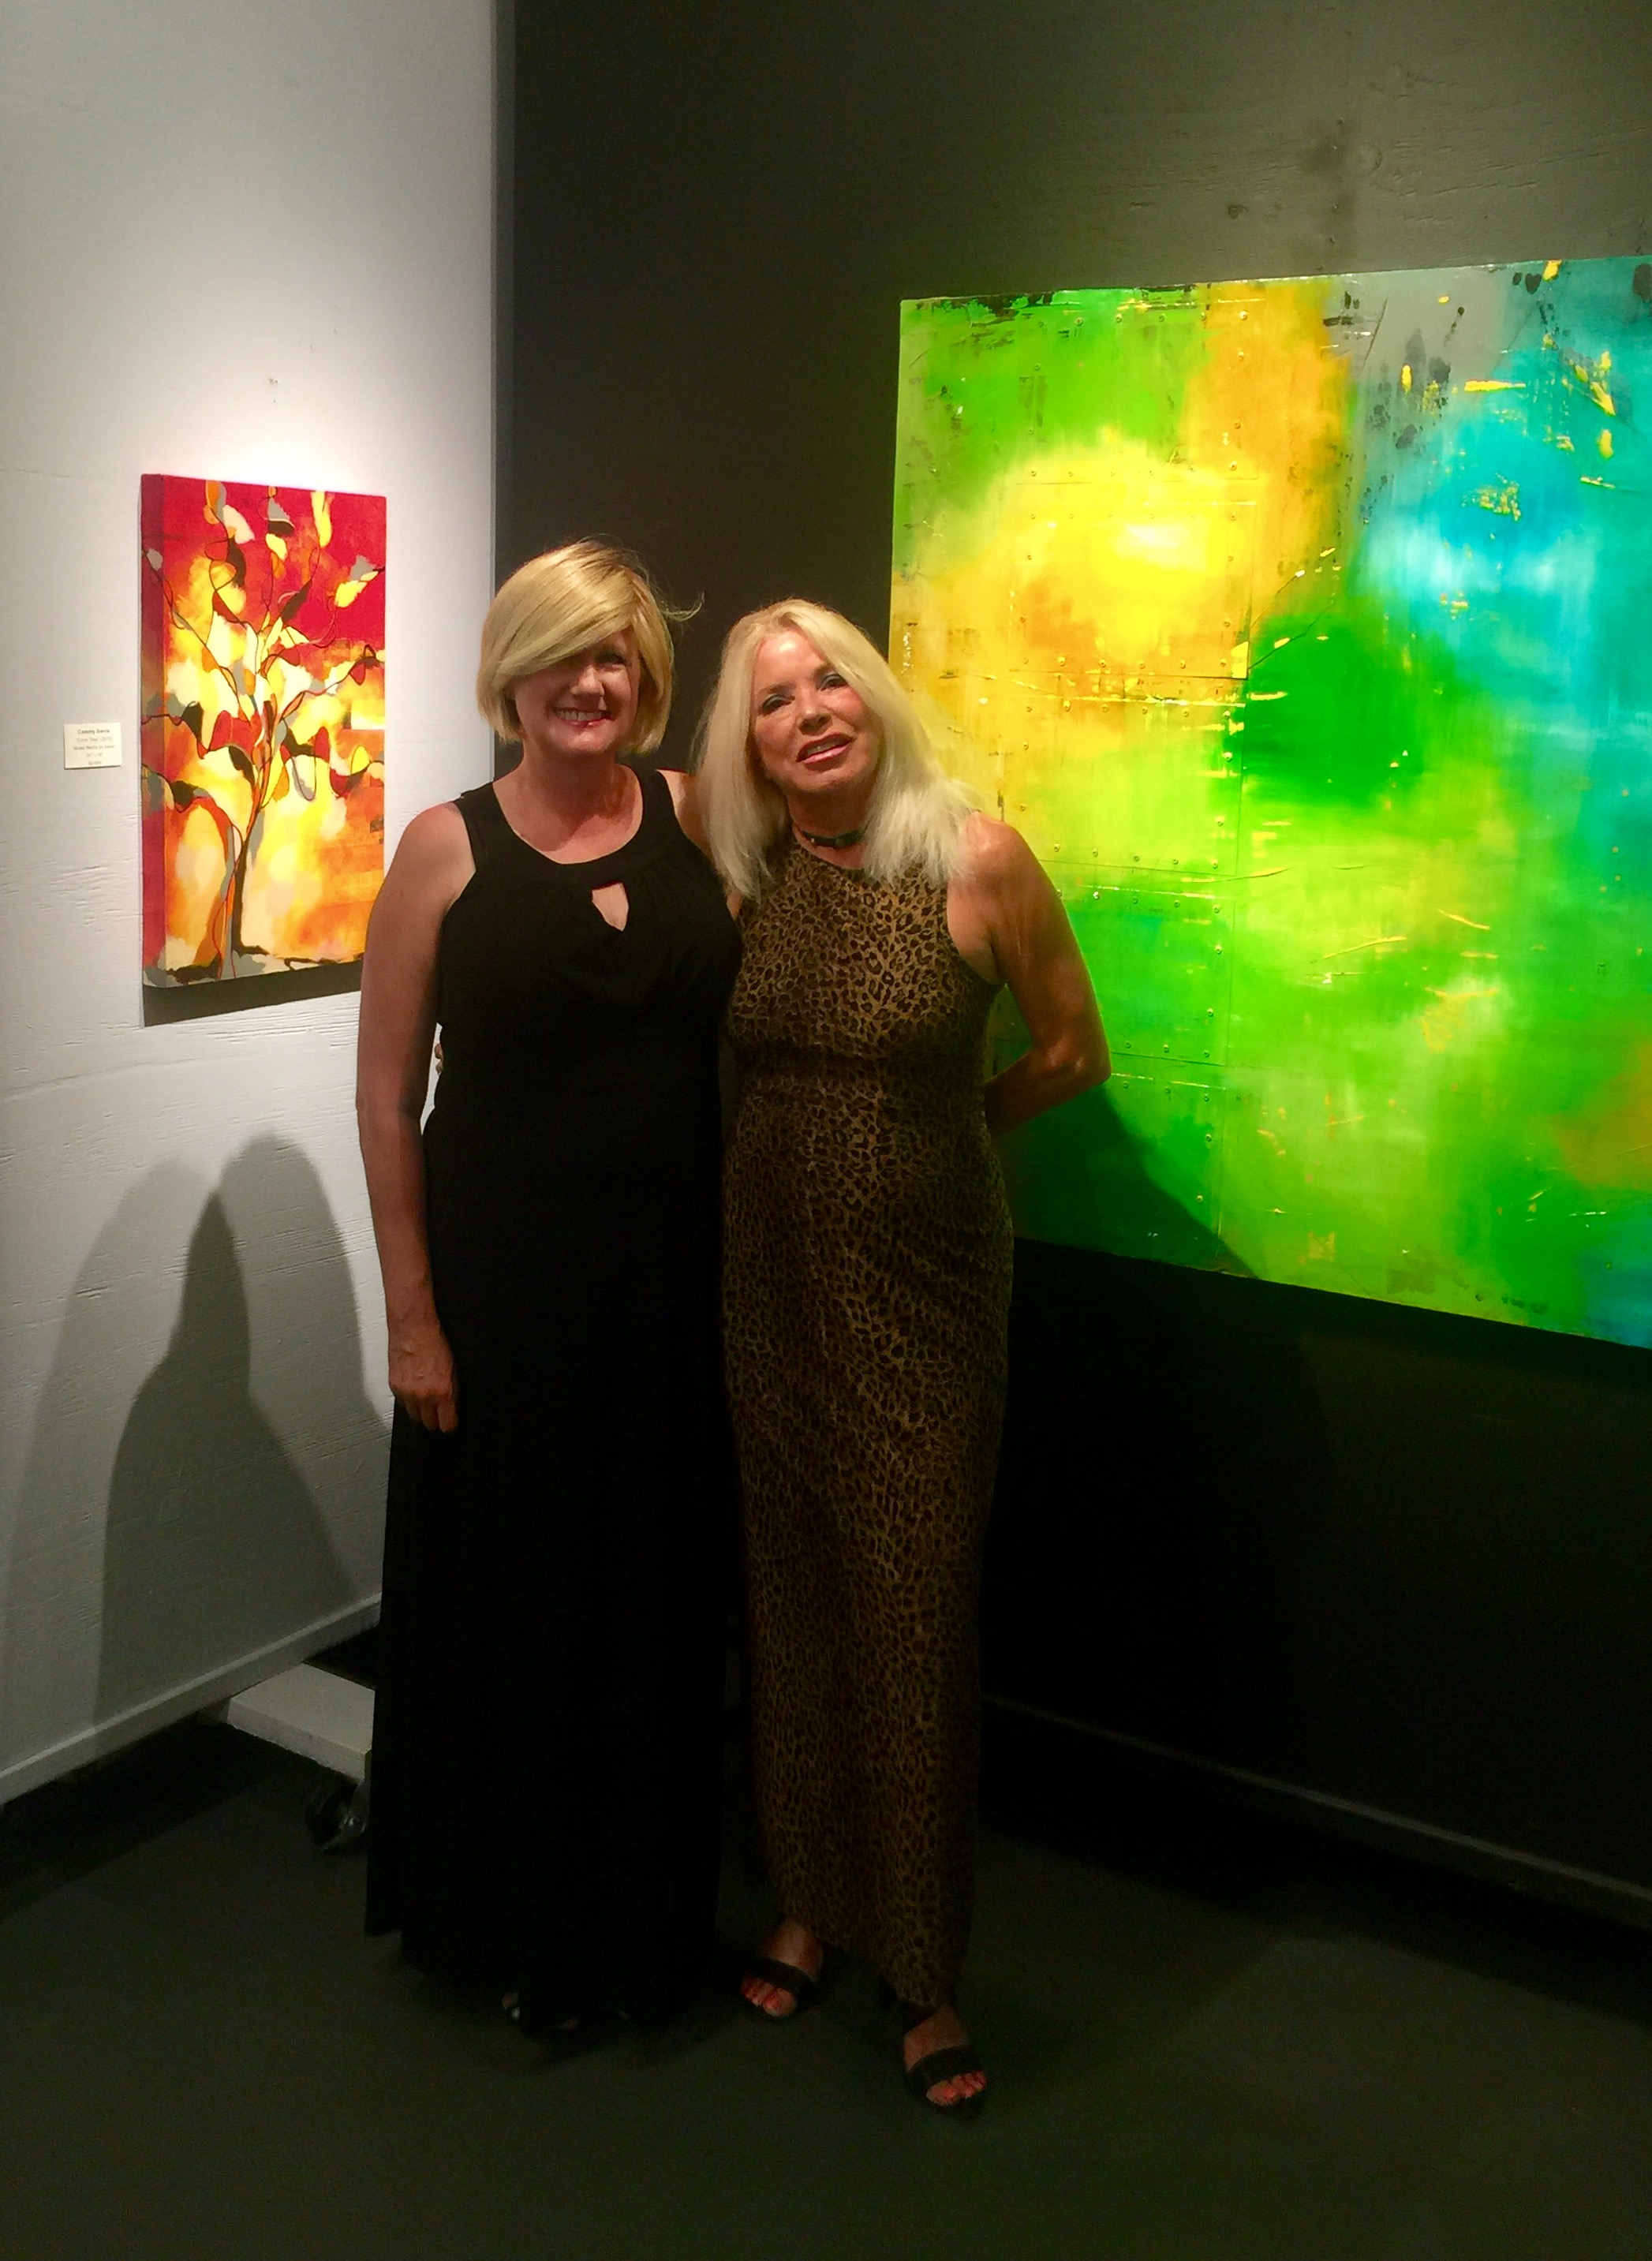 Cathedral City, Art Gallery, Fine Art, Contemporary Art, Group Show, Art Opening